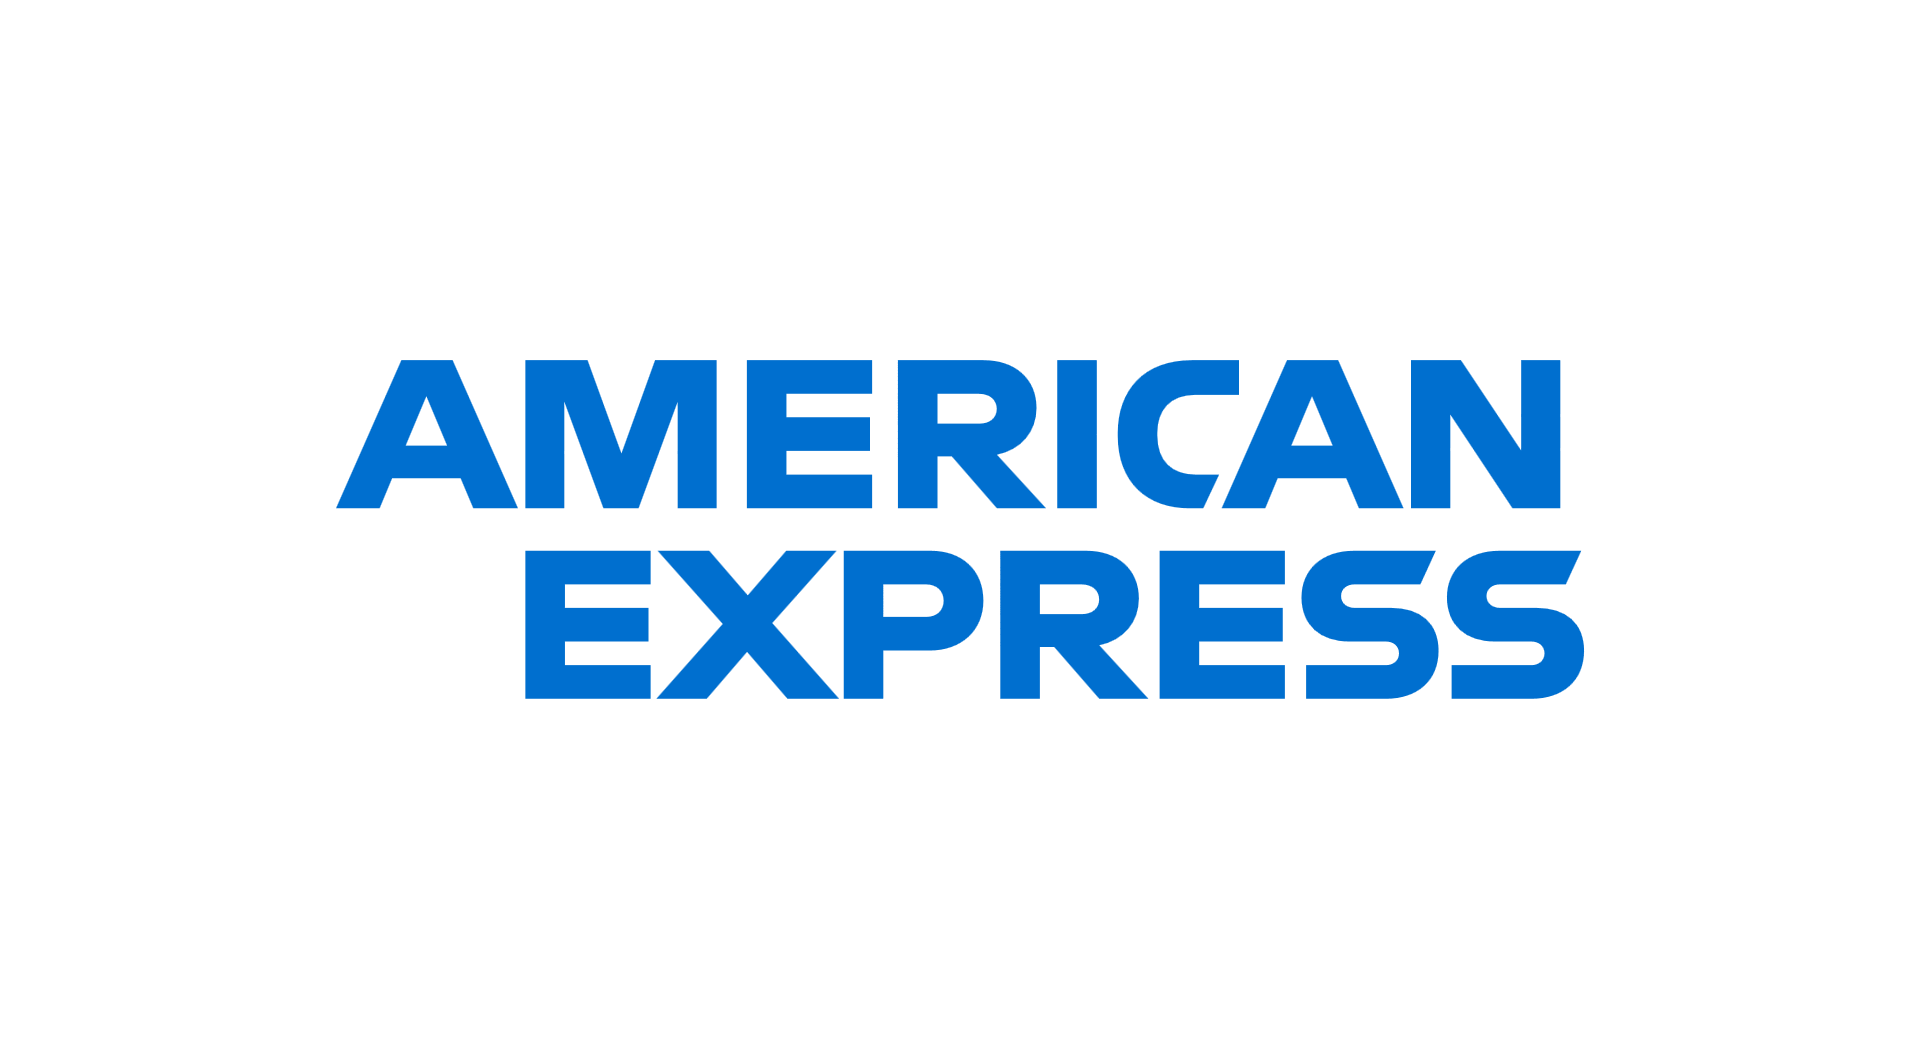 American Express Logo - American Express Logotype Stacked | American Express